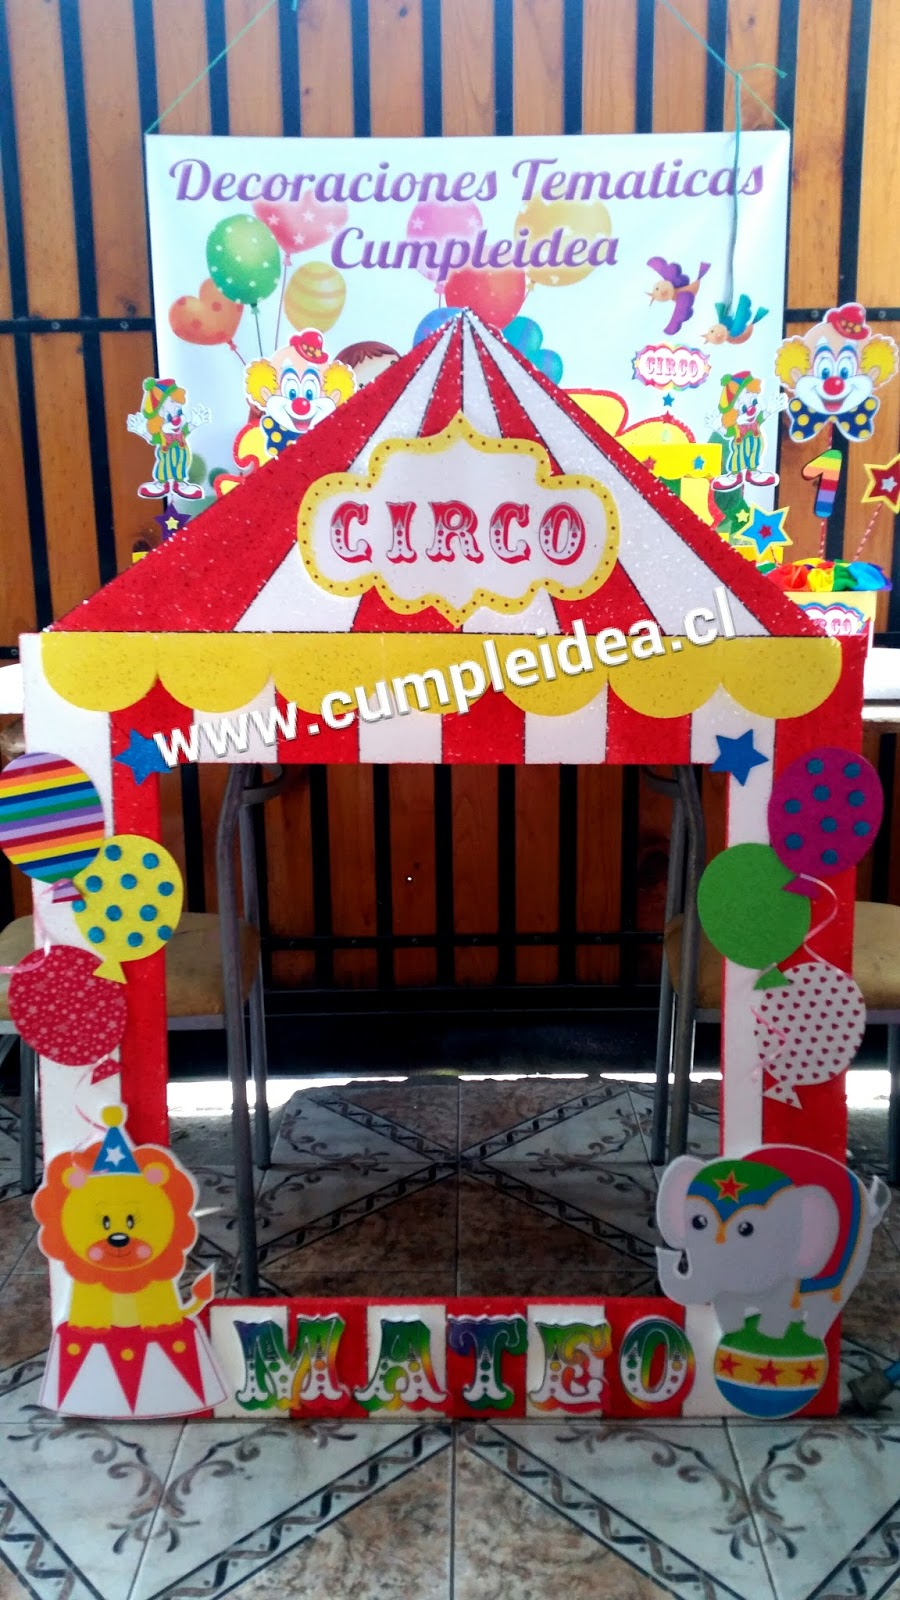 Decoraciones infantiles junio 2015 for Imagenes de decoracion de fiestas infantiles